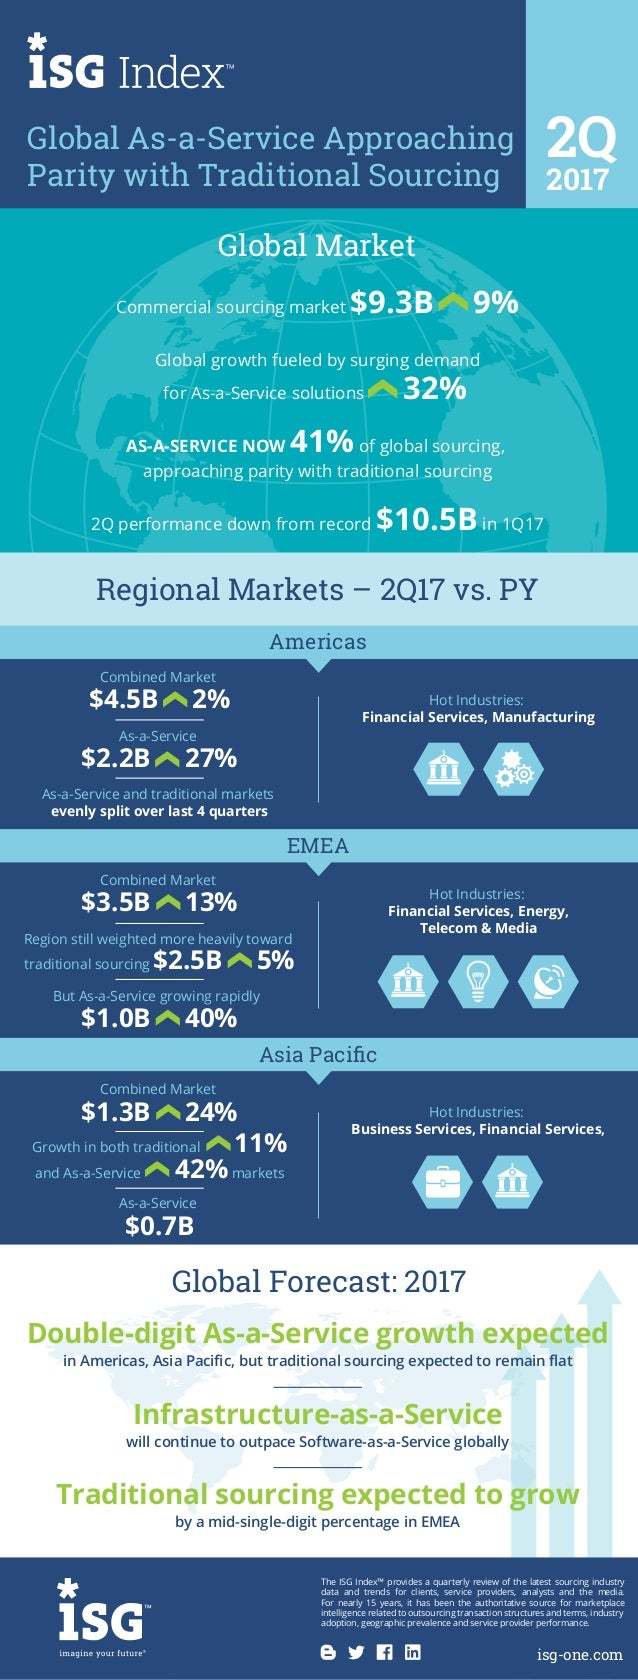 Global Forecast: 2017 Double-digit As-a-Service growth expected in Americas, Asia Pacific, but traditional sourcing expecte...